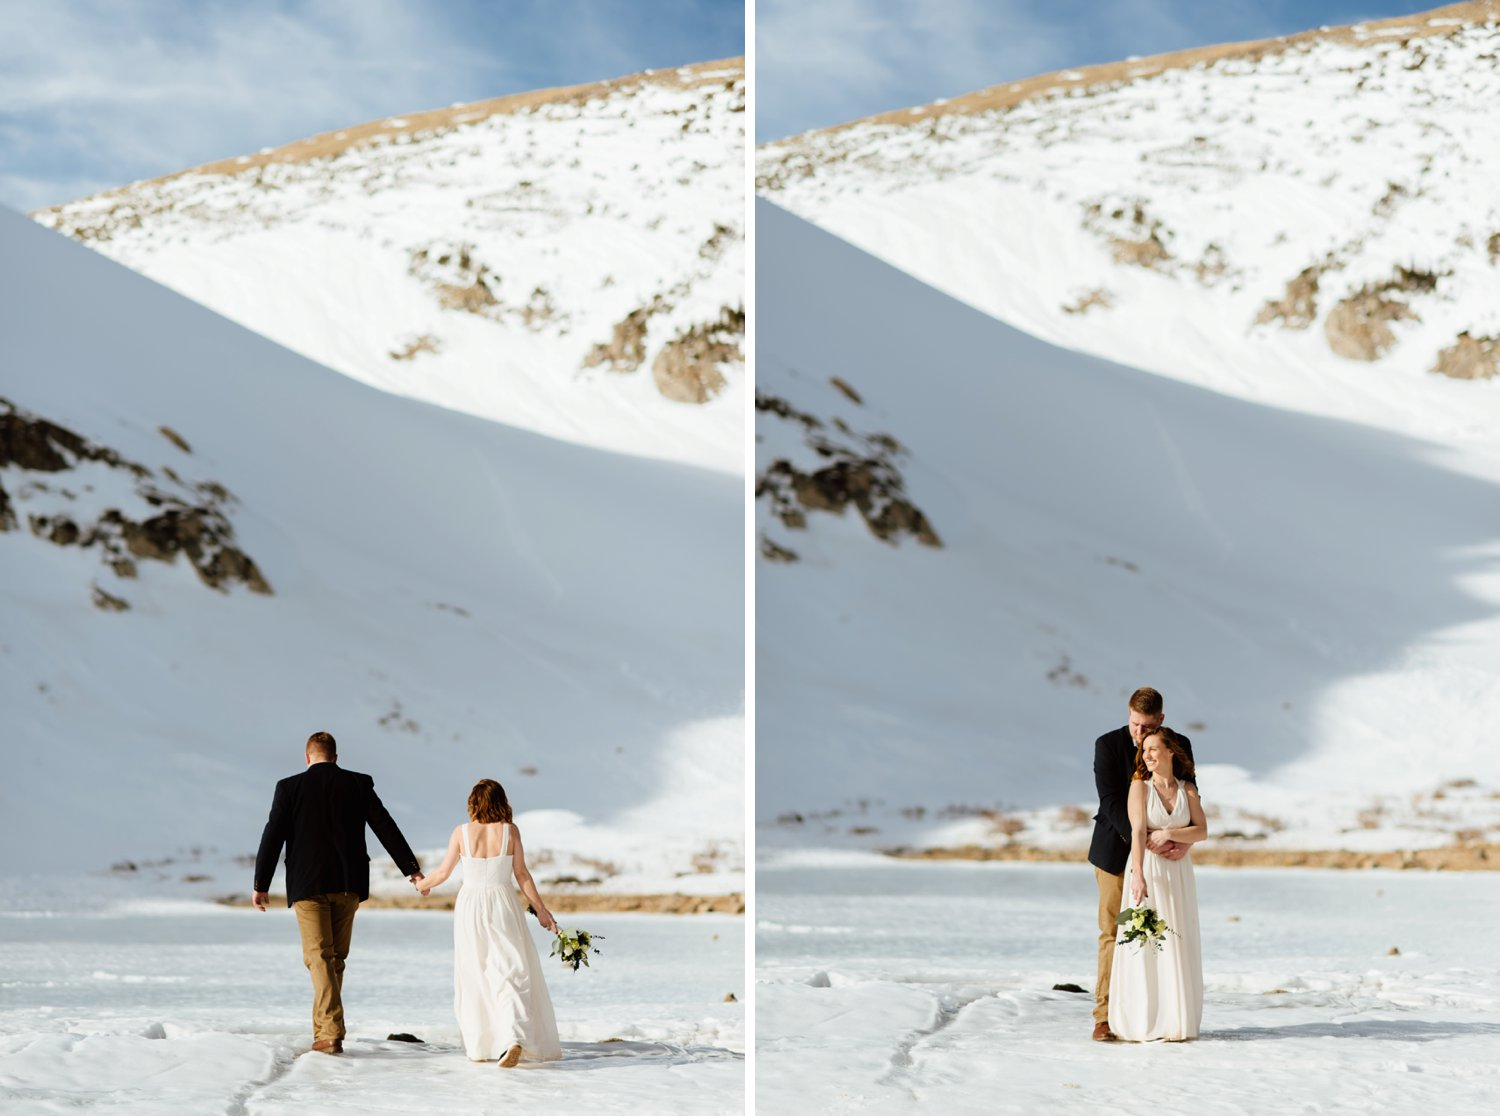 This adorable couple looks so cute playing in the snow on their wedding day up in Colorado's Rocky Mountains. It's such a great idea to have your intimate elopement somewhere so secluded like Saint Mary's Glacier!| Colorado wedding photos by intimate, elopement photographer, Maddie Mae.